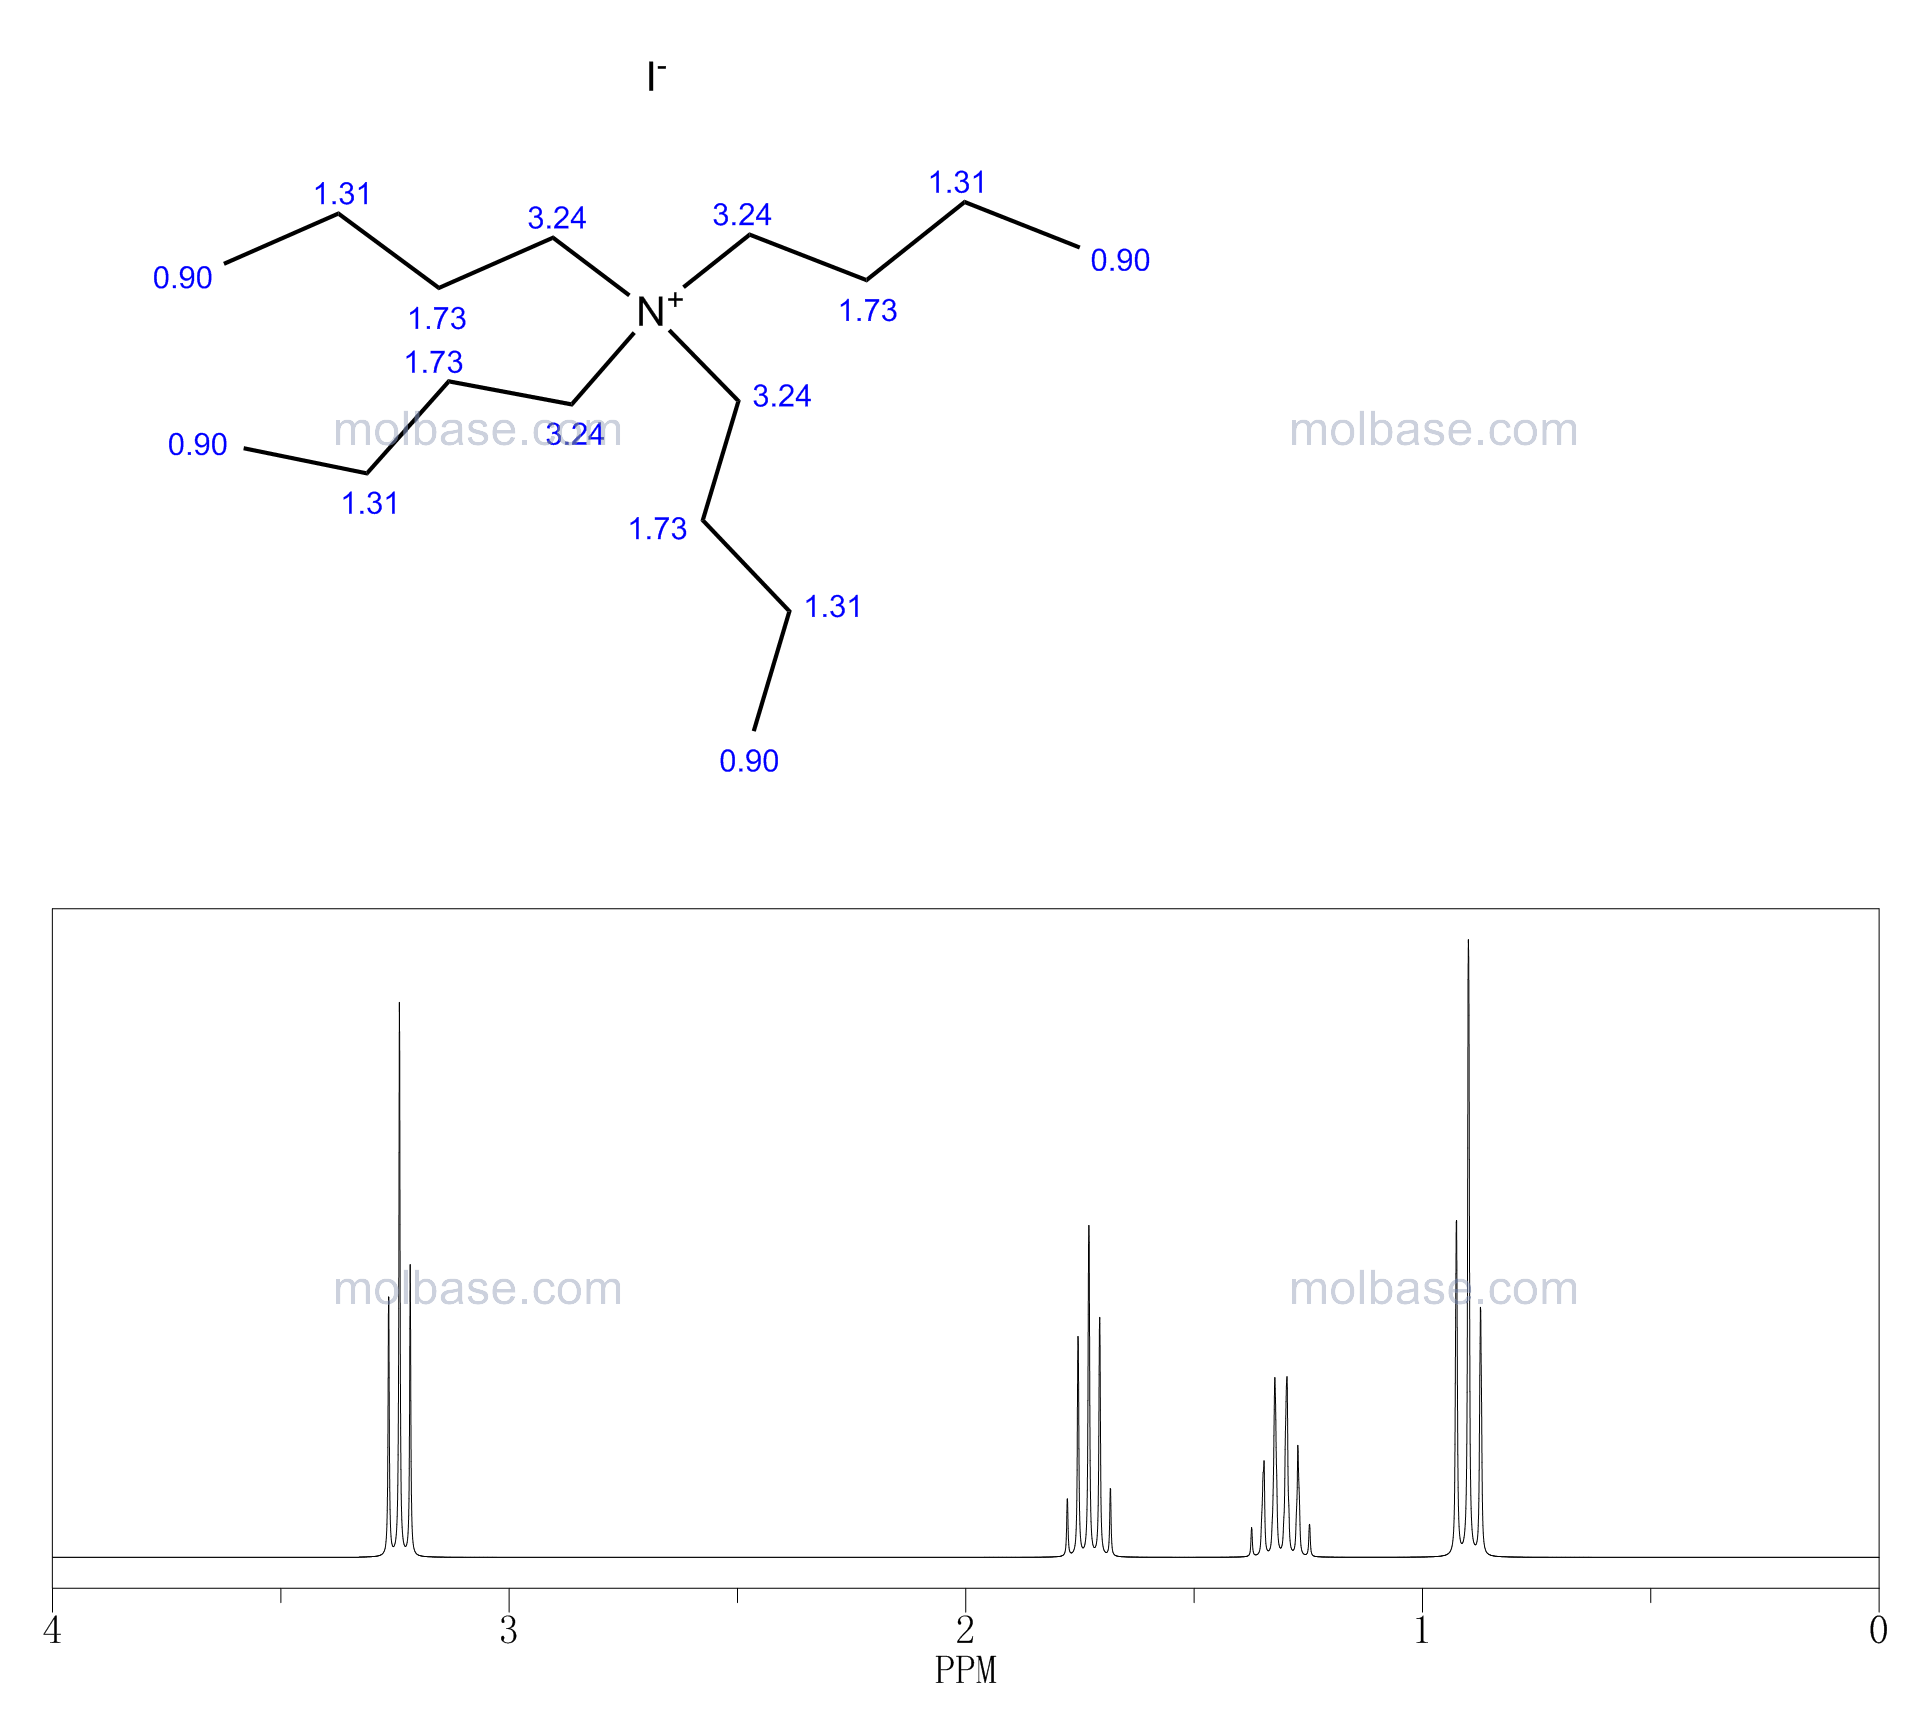 tetrabutylazanium,iodide NMR spectra analysis, Chemical CAS NO. 311-28-4 NMR spectral analysis, tetrabutylazanium,iodide C-NMR spectrum